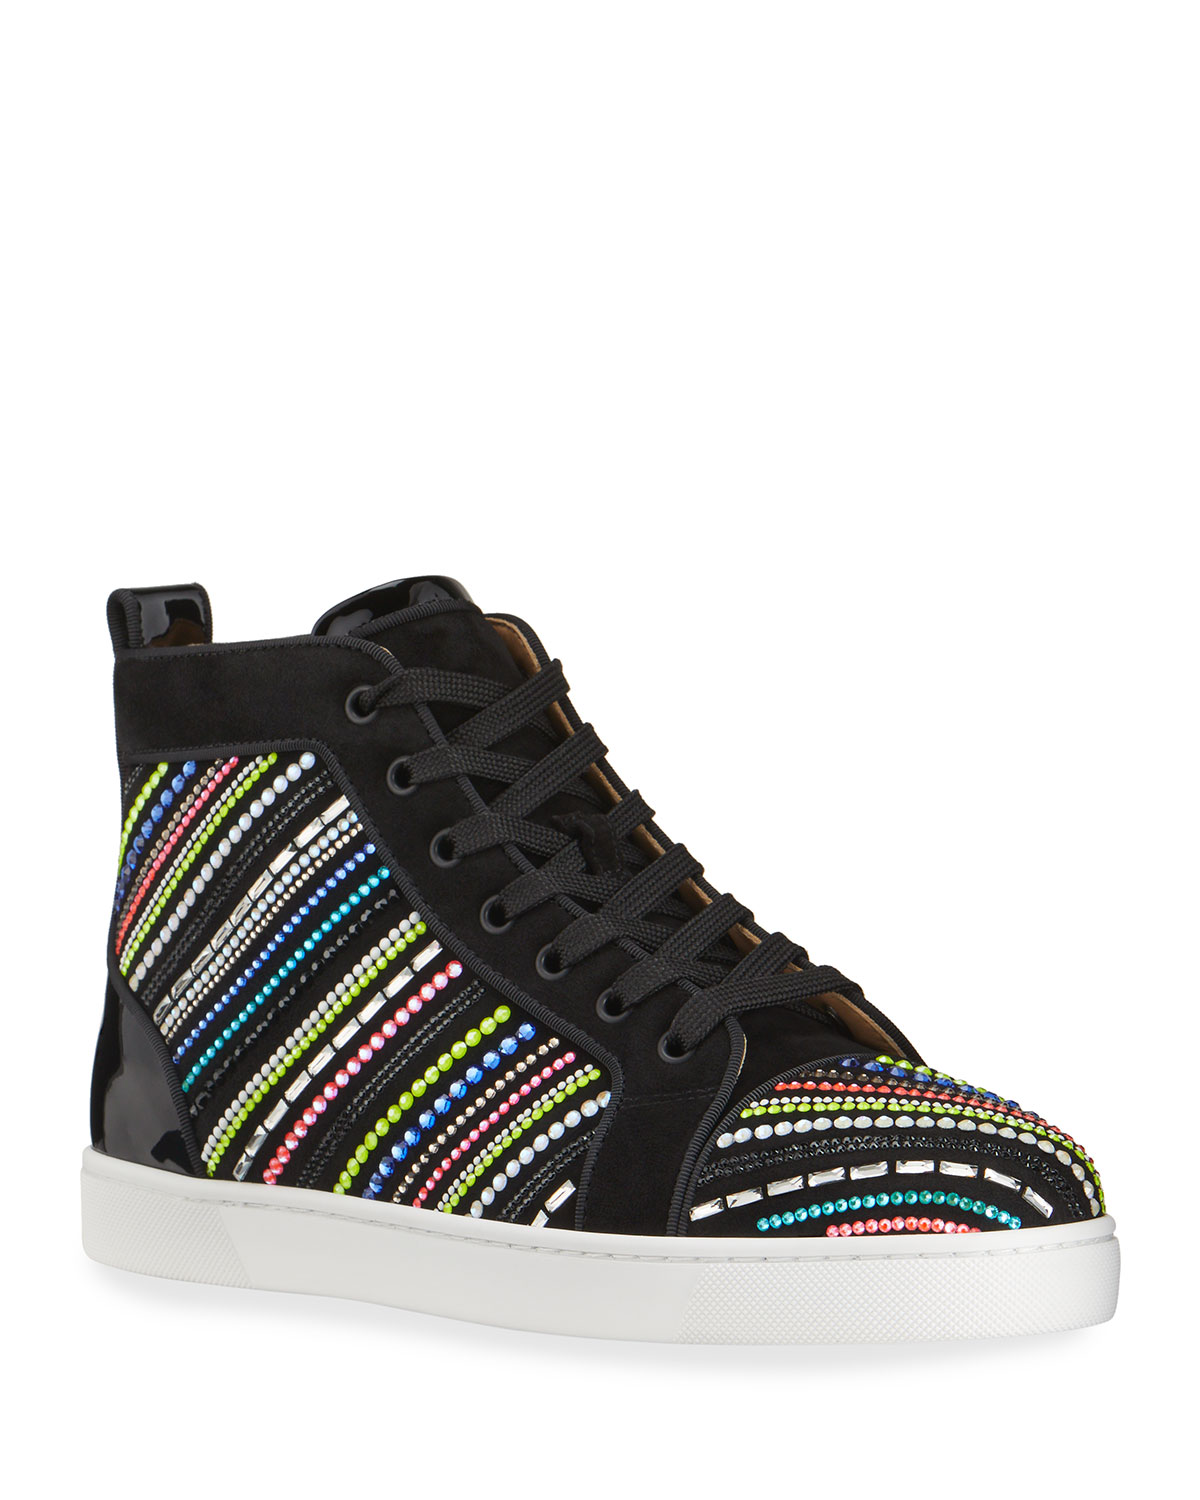 Christian Louboutin MEN'S LOUIS RAYS MULTICOLORED EMBELLISHED RED SOLE HIGH-TOP SNEAKERS